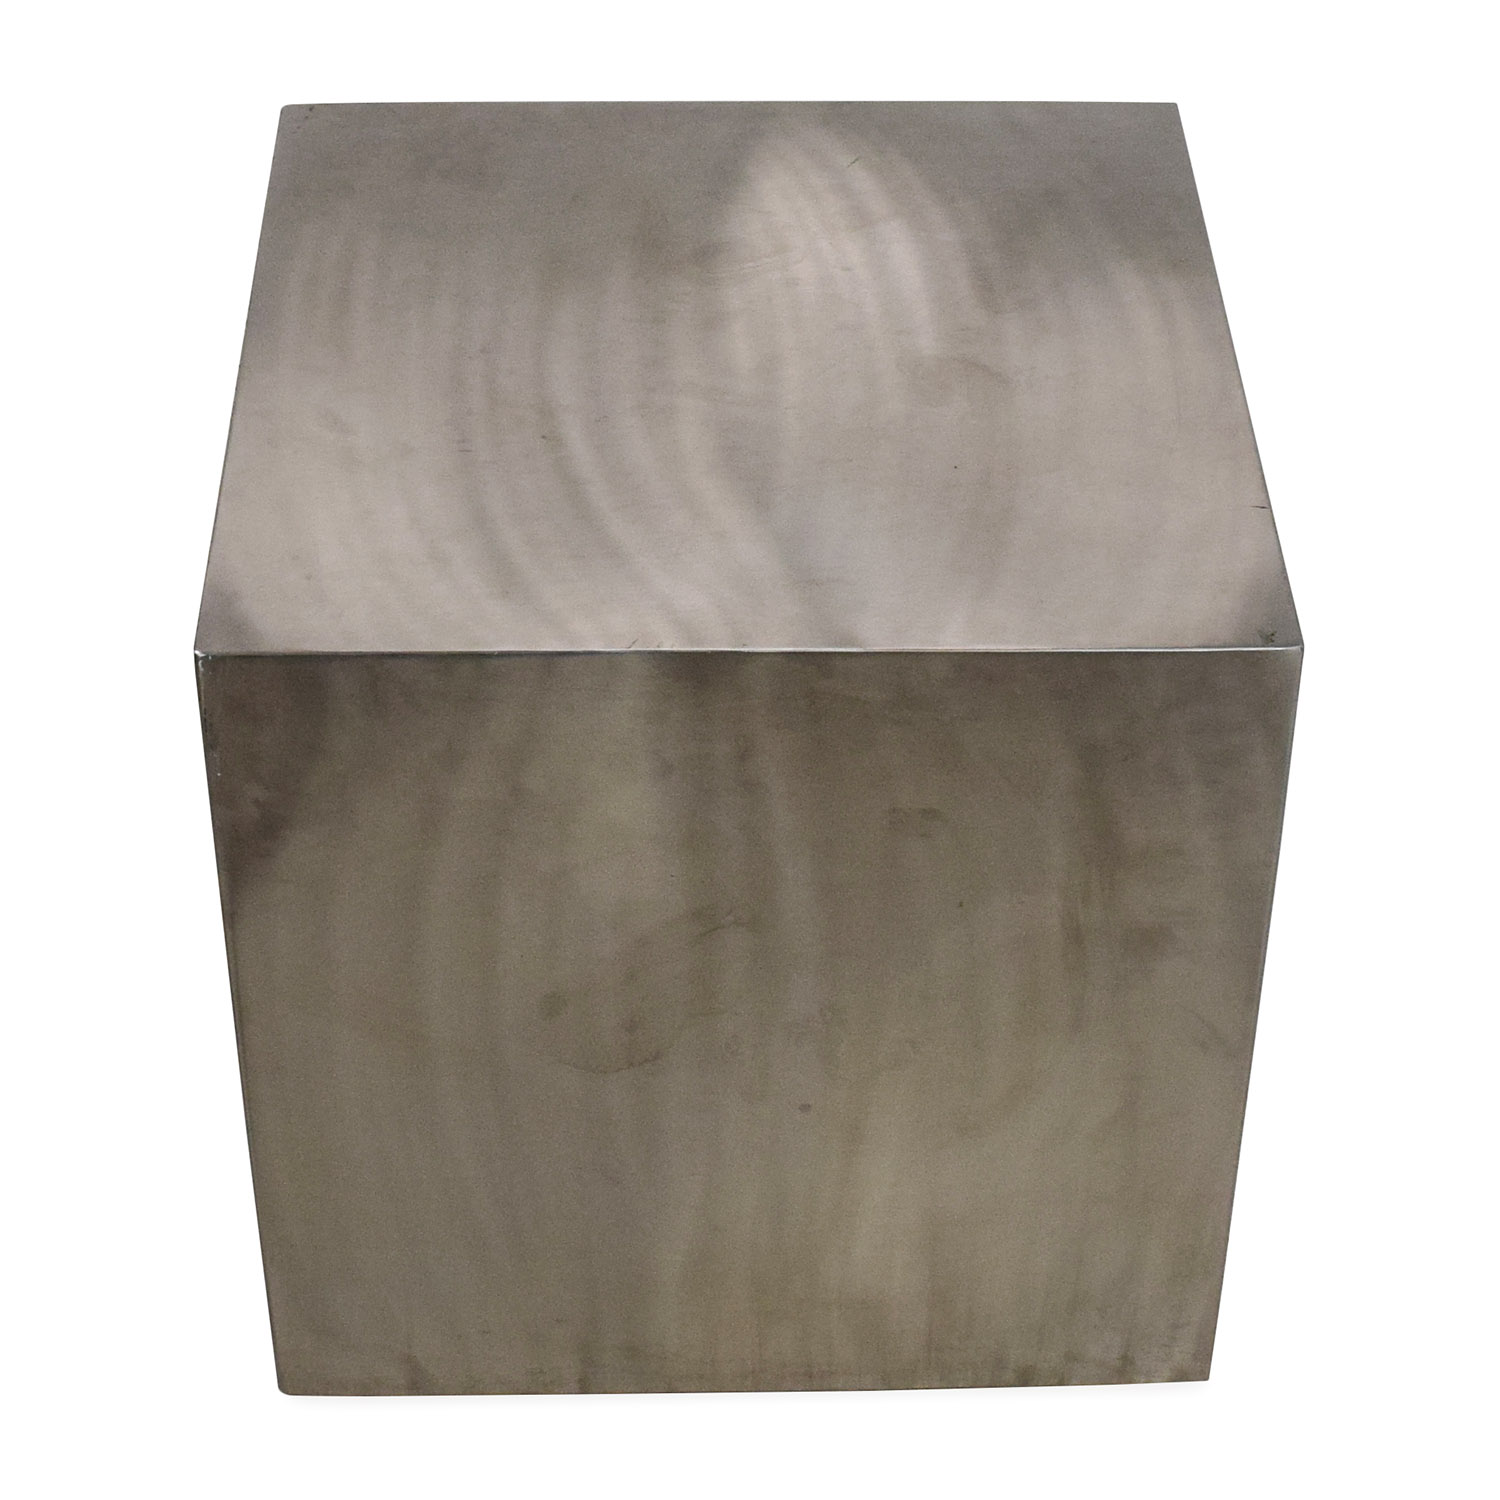 Zuo Modern Contemporary Stainless Steel End Table second hand